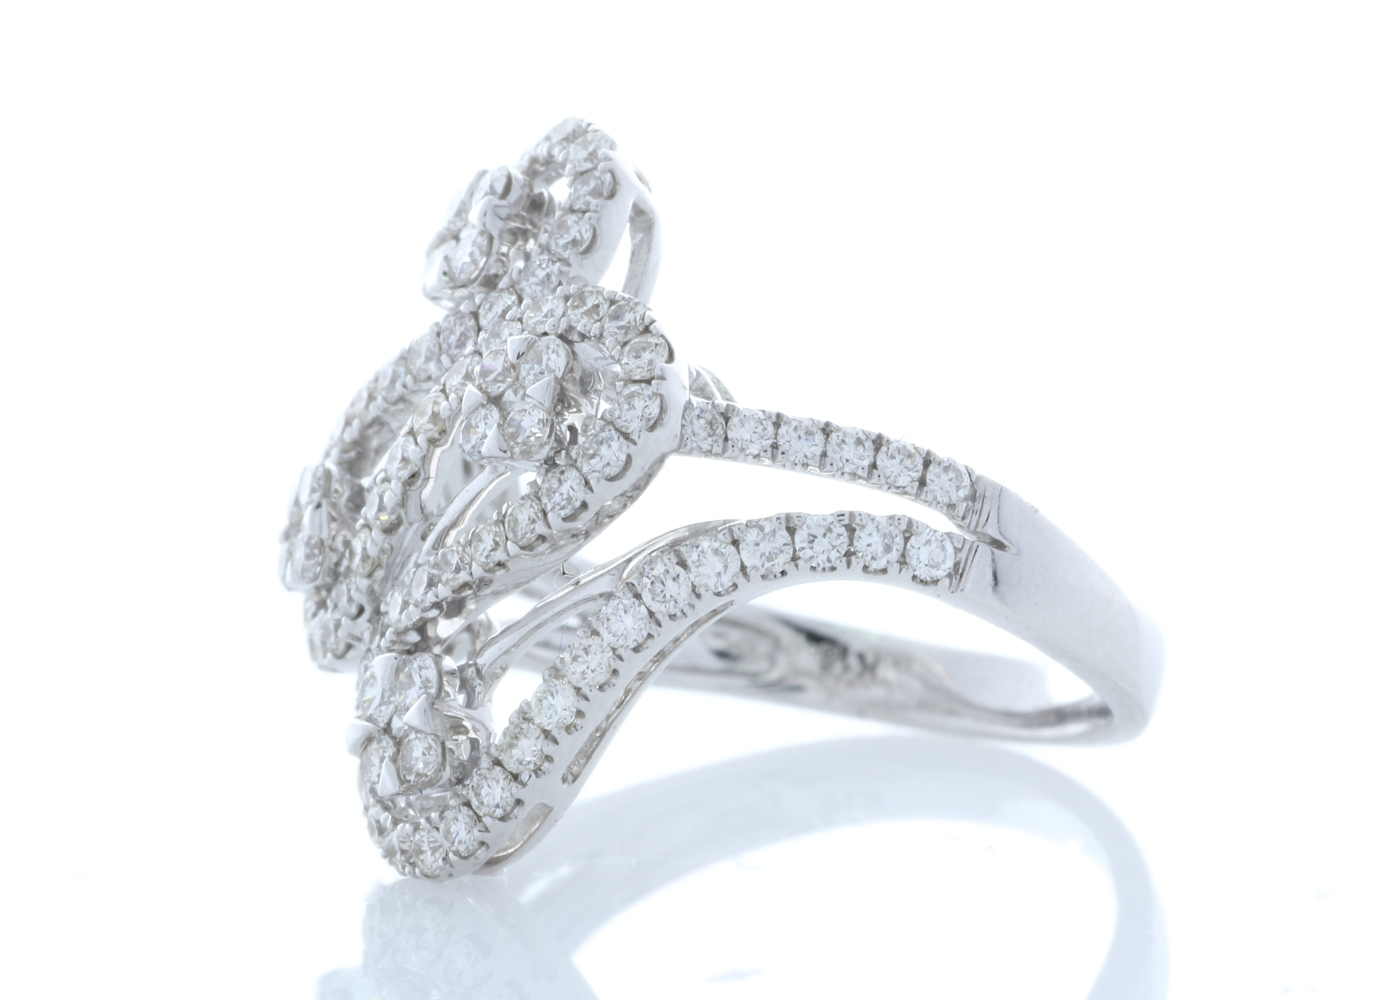 18ct White Gold Fancy Cluster Diamond Ring 1.15 Carats - Image 2 of 4